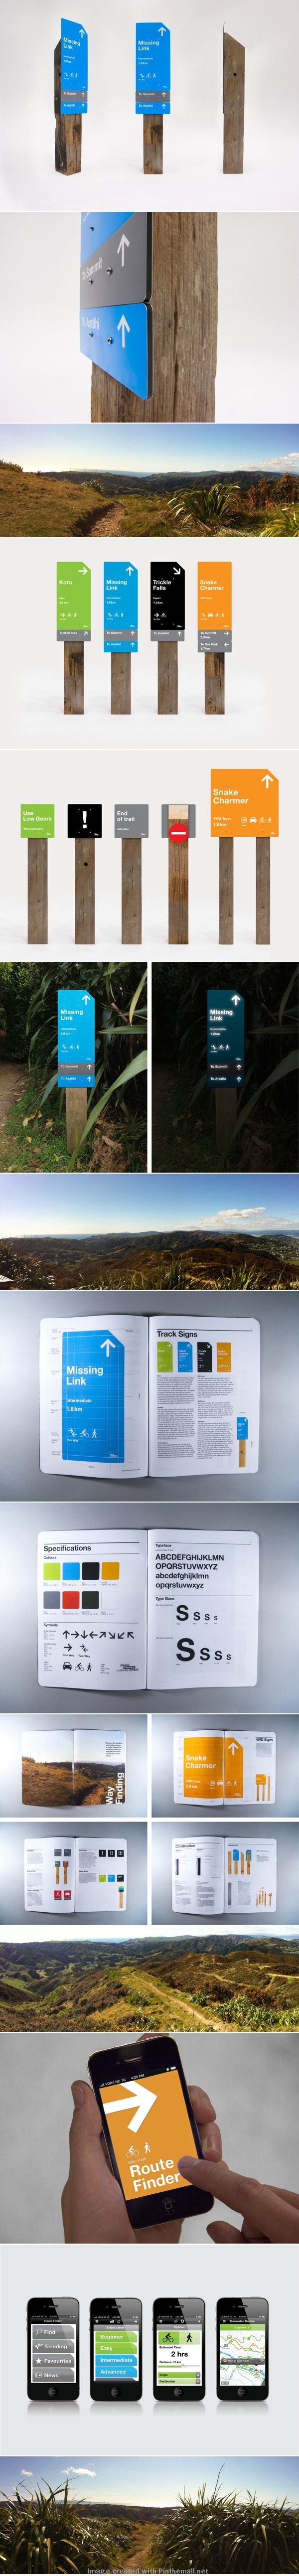 Makara Peak mountain bike trails wayfinding system